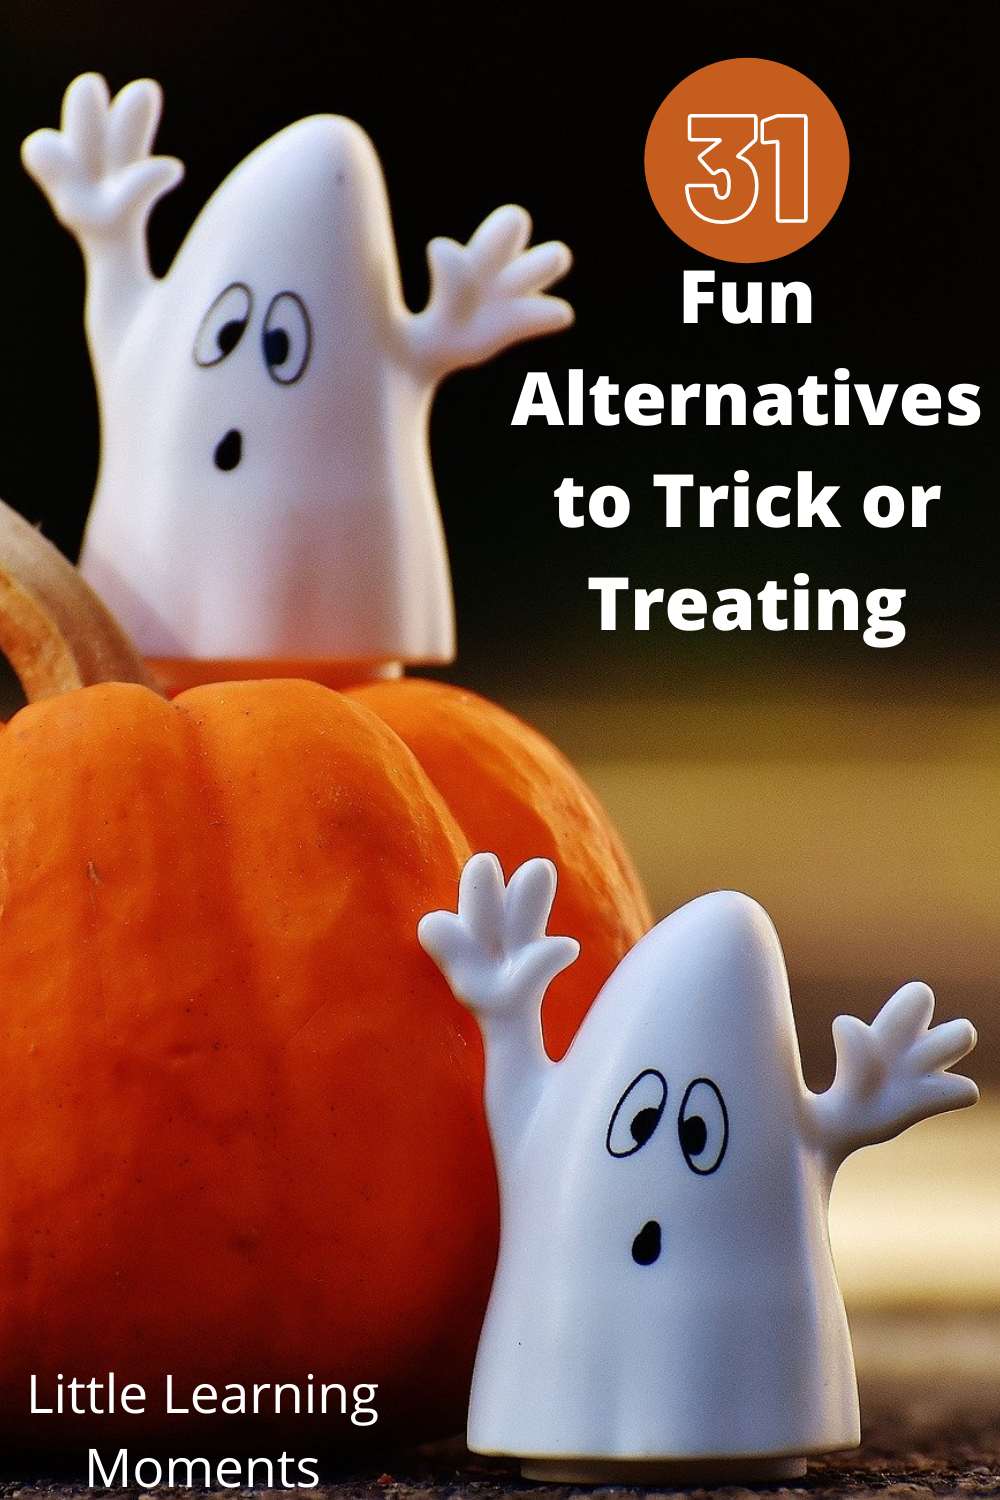 Trick or treating alternatives